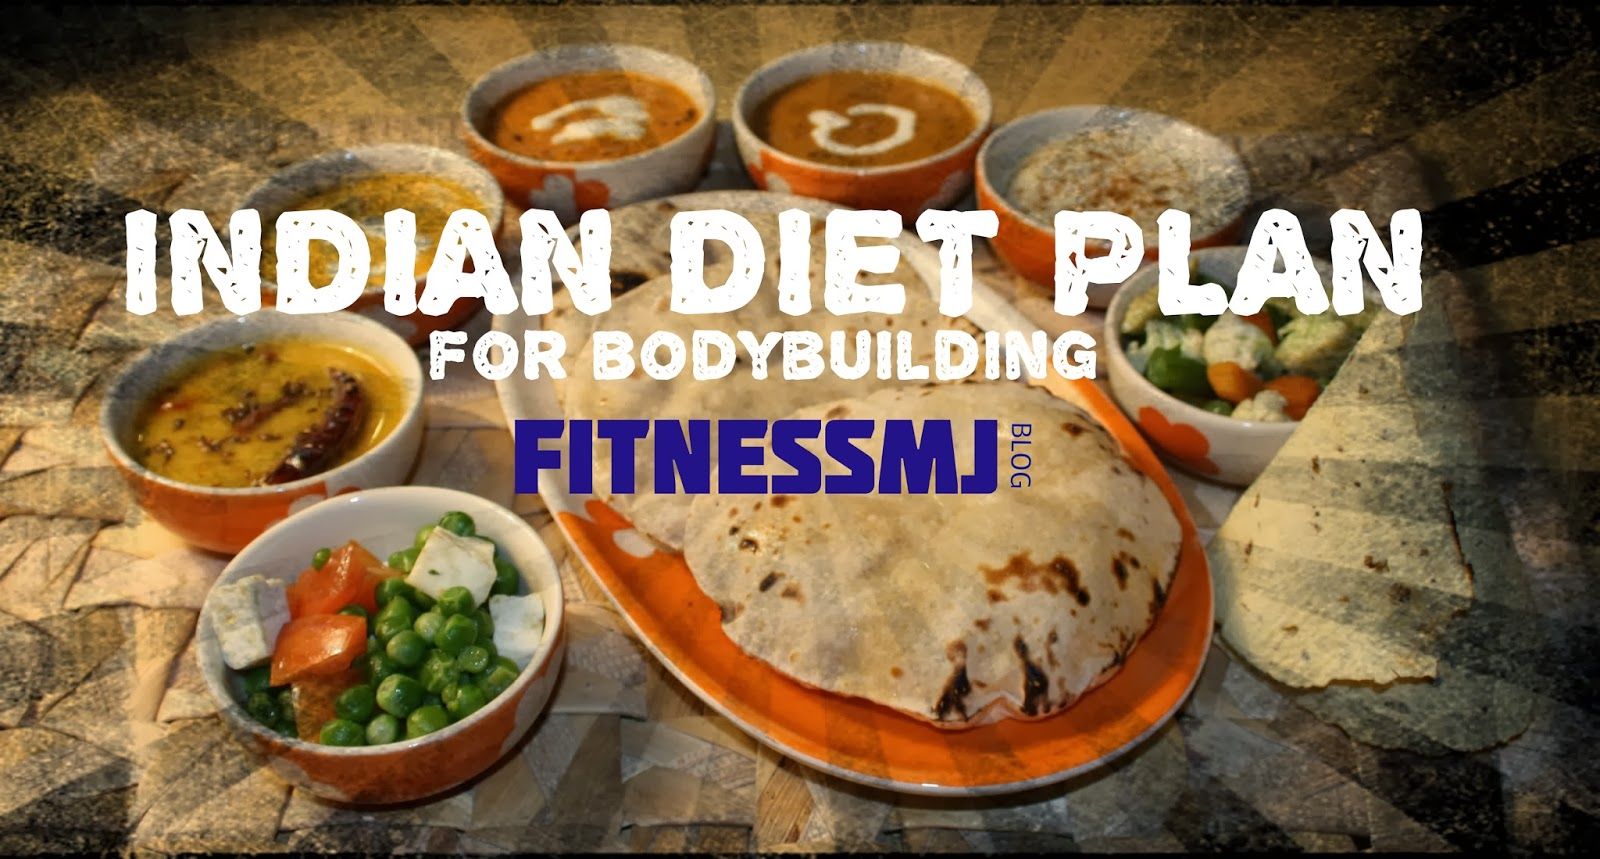 Indian diet plan for bodybuilding aesthetic bodybuilding lately ive been looking for an india food diet for our fellow indian bodybuilders on the internet and unfortunately there are no any forumfinder Choice Image